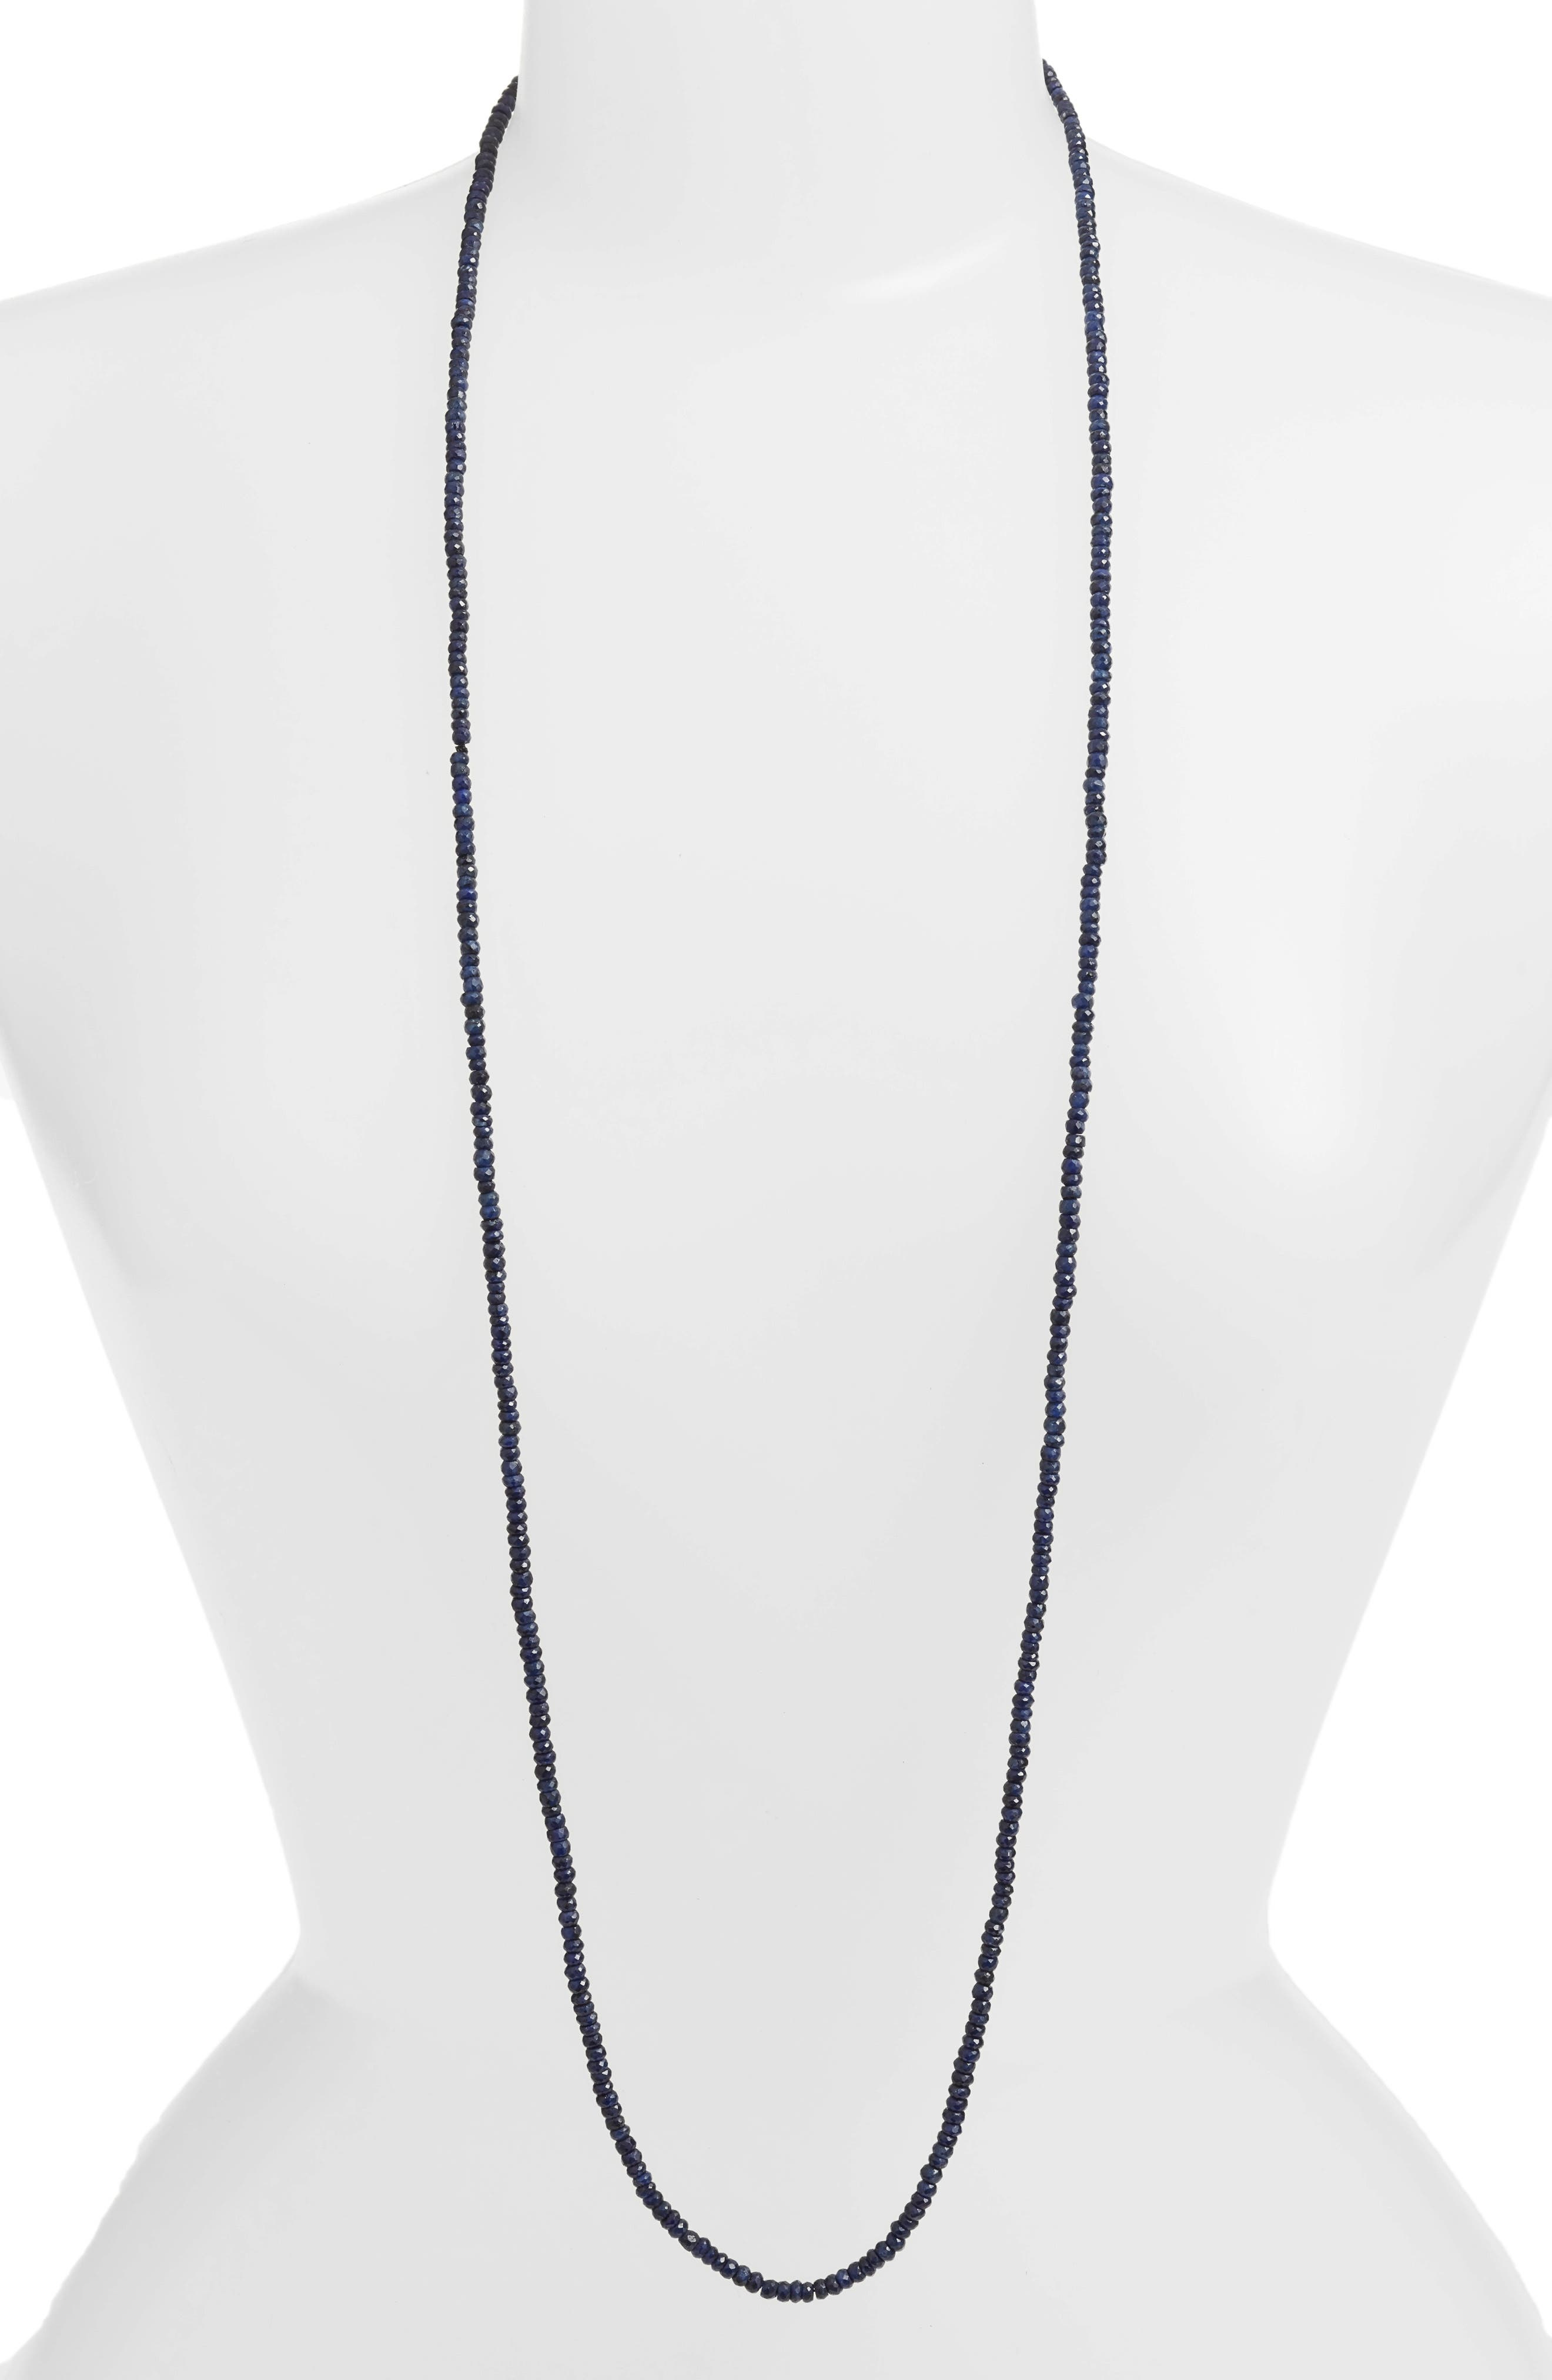 Topanga Gemstone Necklace,                         Main,                         color, 400